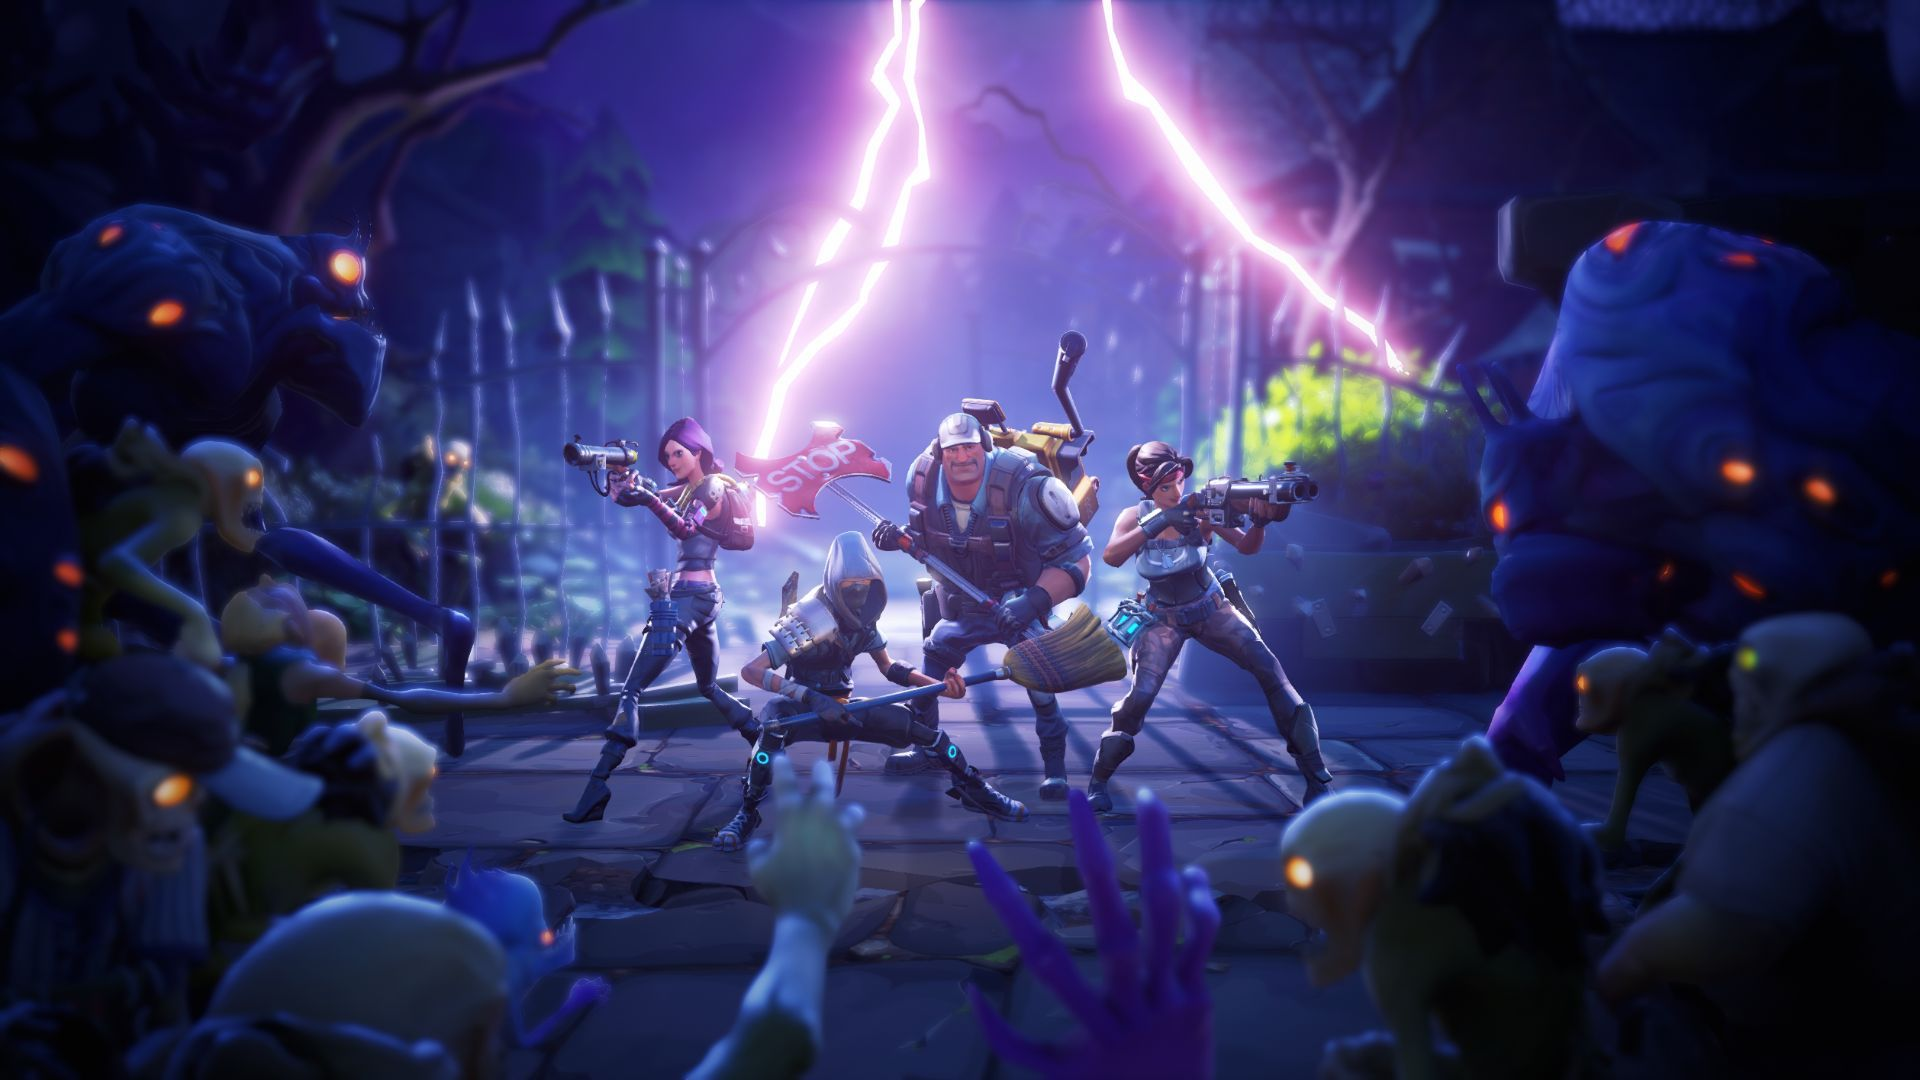 Fortnite Fotos De Gamers Fortnite Fortnite Personajes